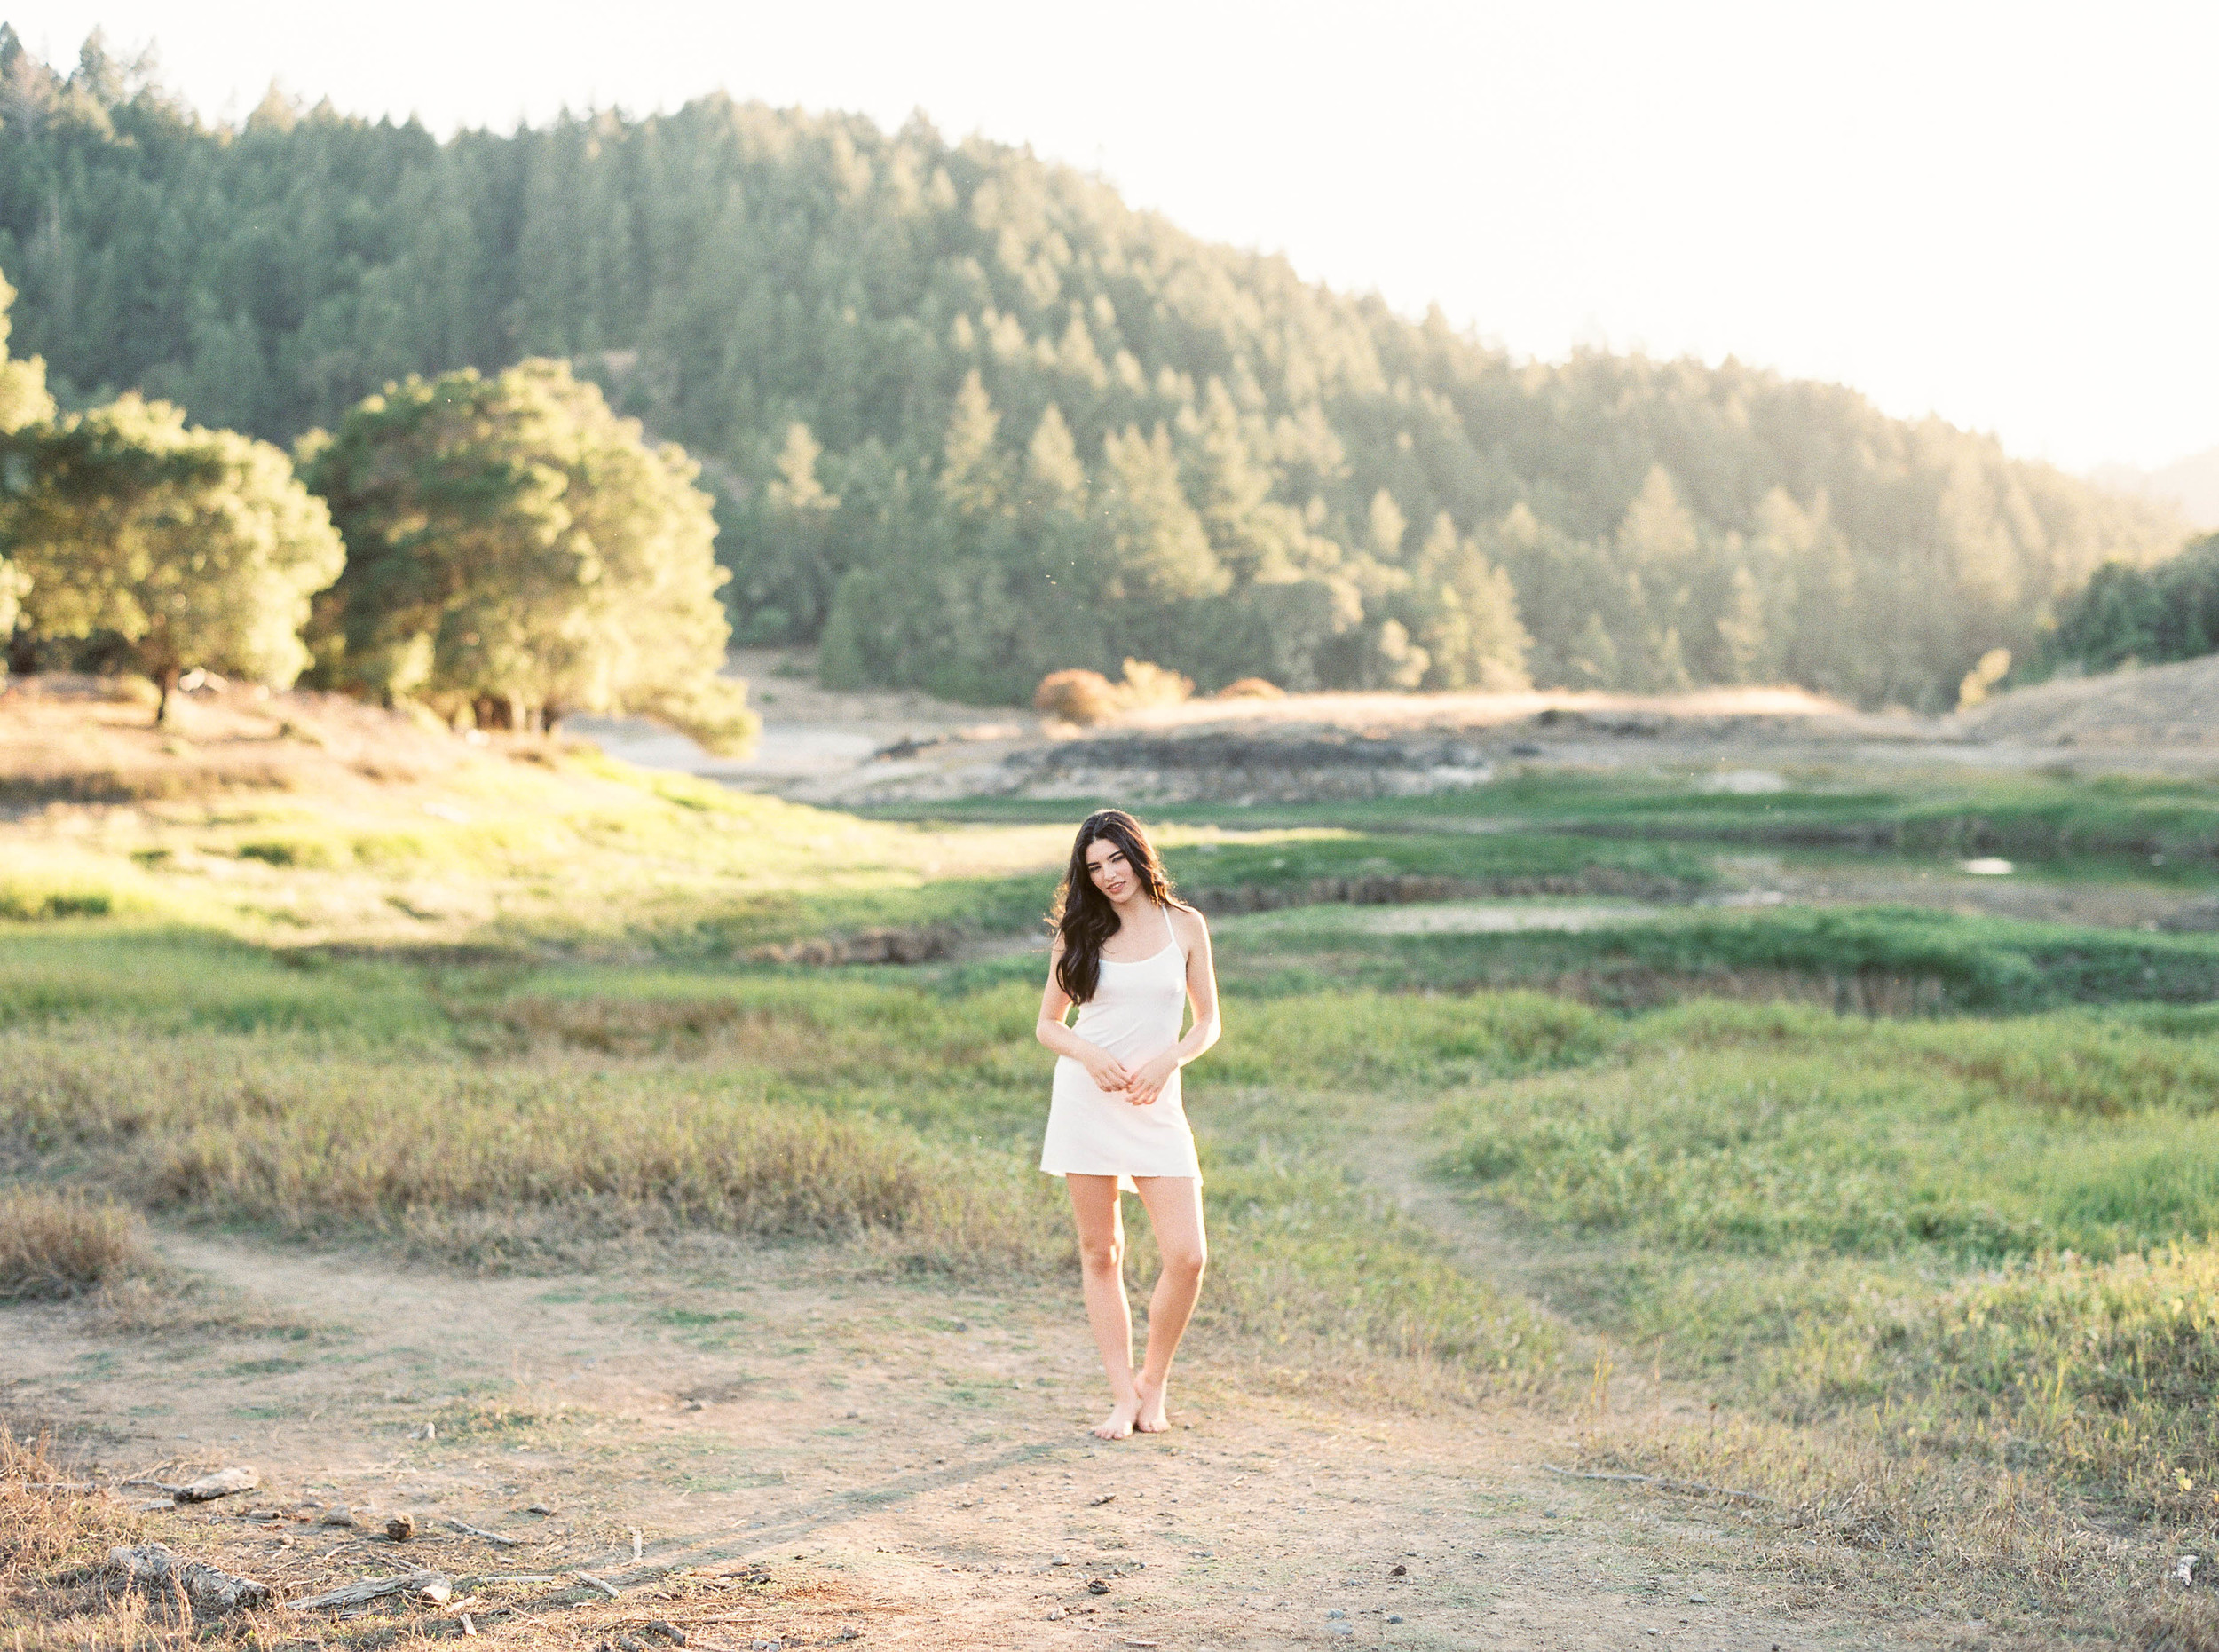 Meghan Mehan Photography - Fine Art Film Photography - BNelle Lookbook - San Francisco | Napa | Sonoma | Big Sur | Santa Barbara - 188.jpg